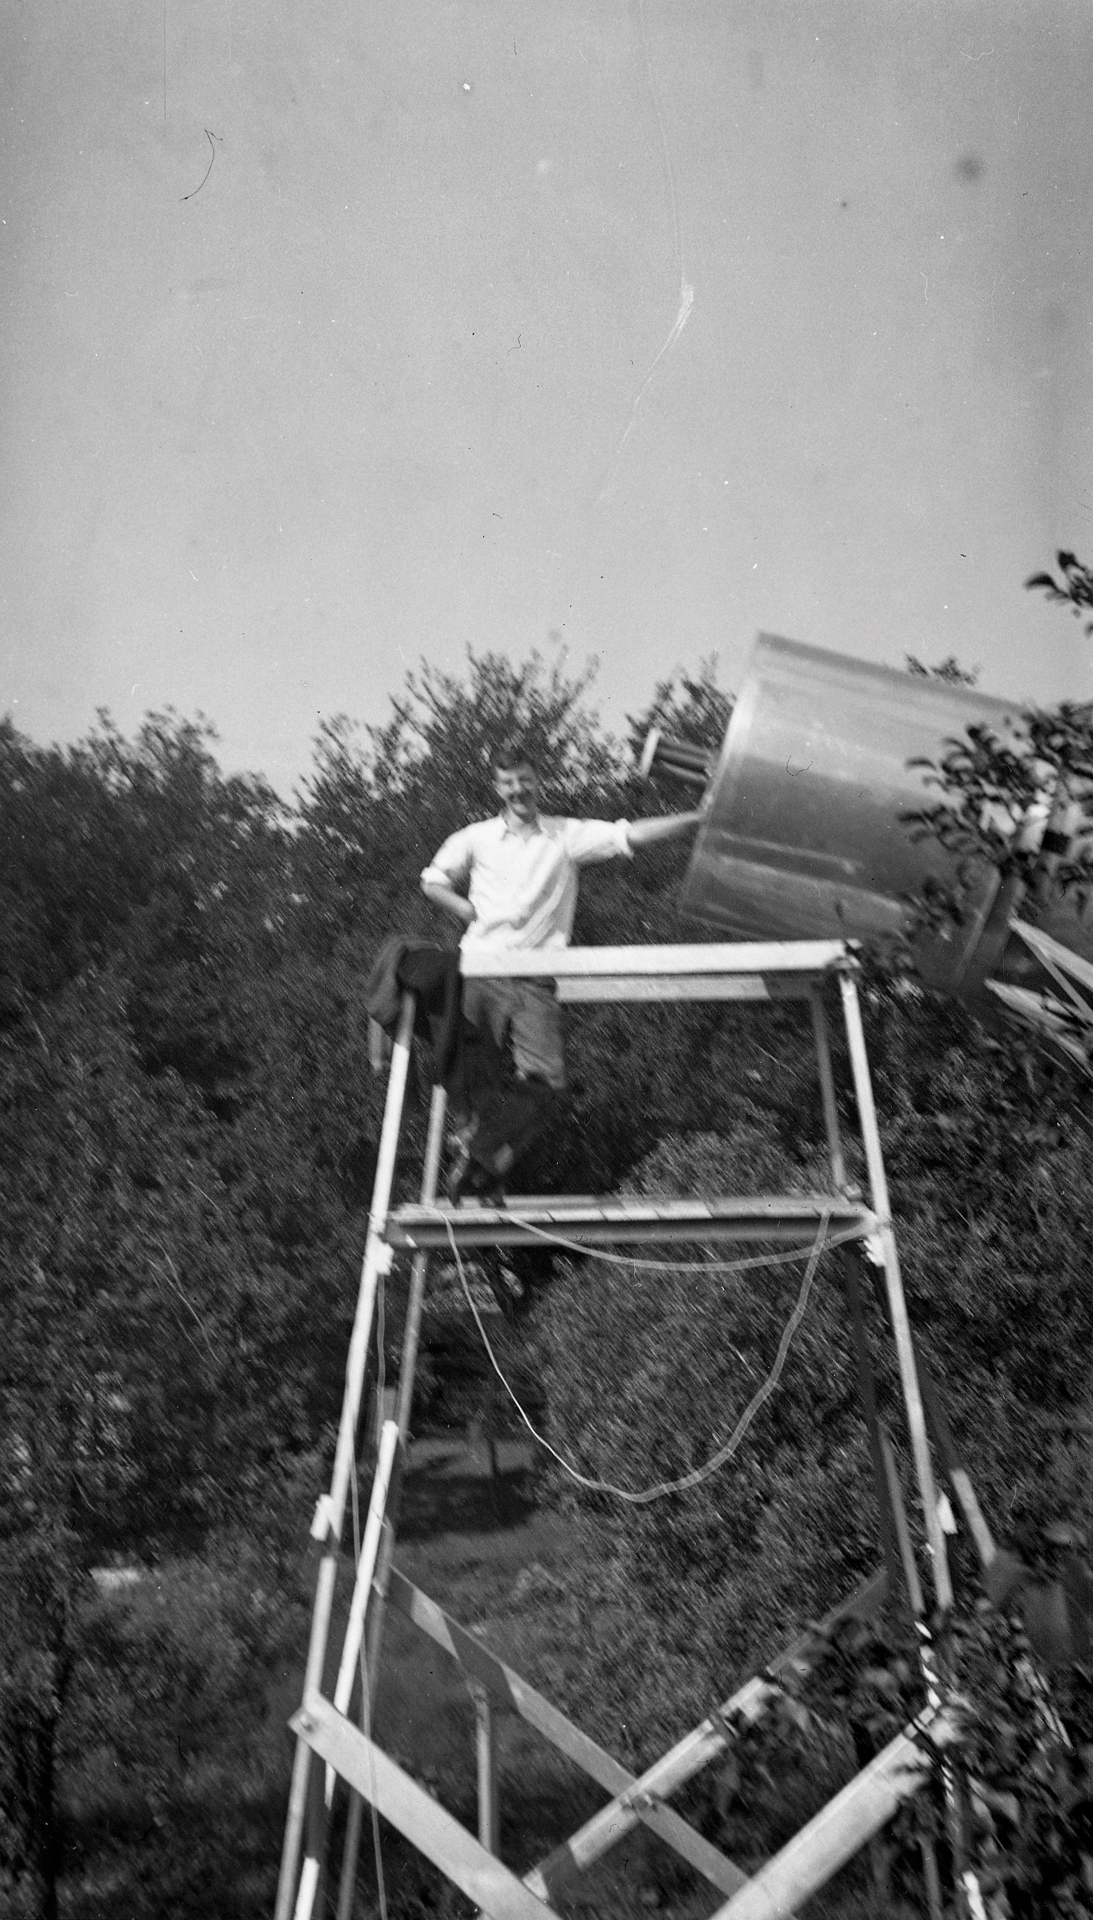 Grote Reber and his telescope